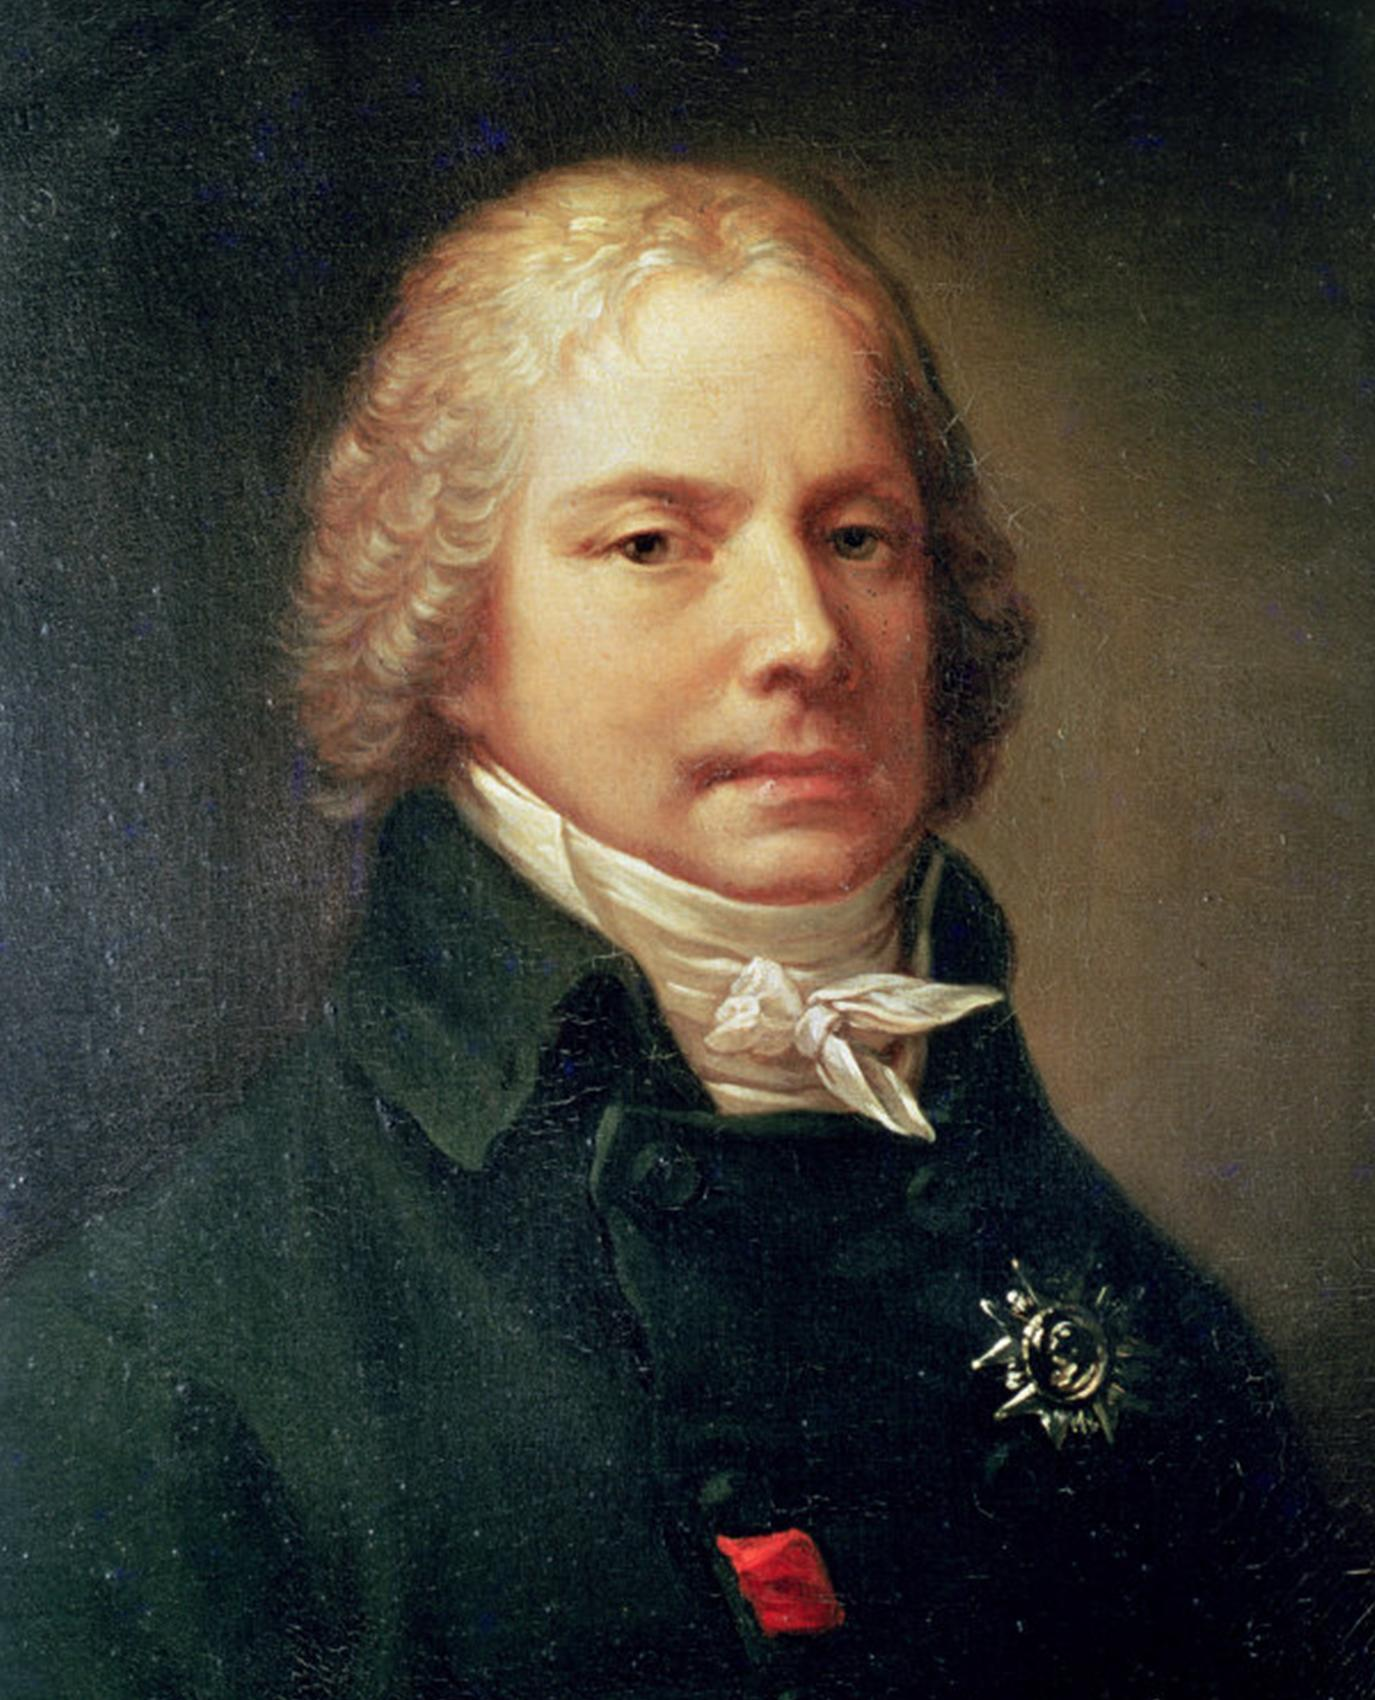 http://upload.wikimedia.org/wikipedia/commons/c/cb/Talleyrand_01.jpg